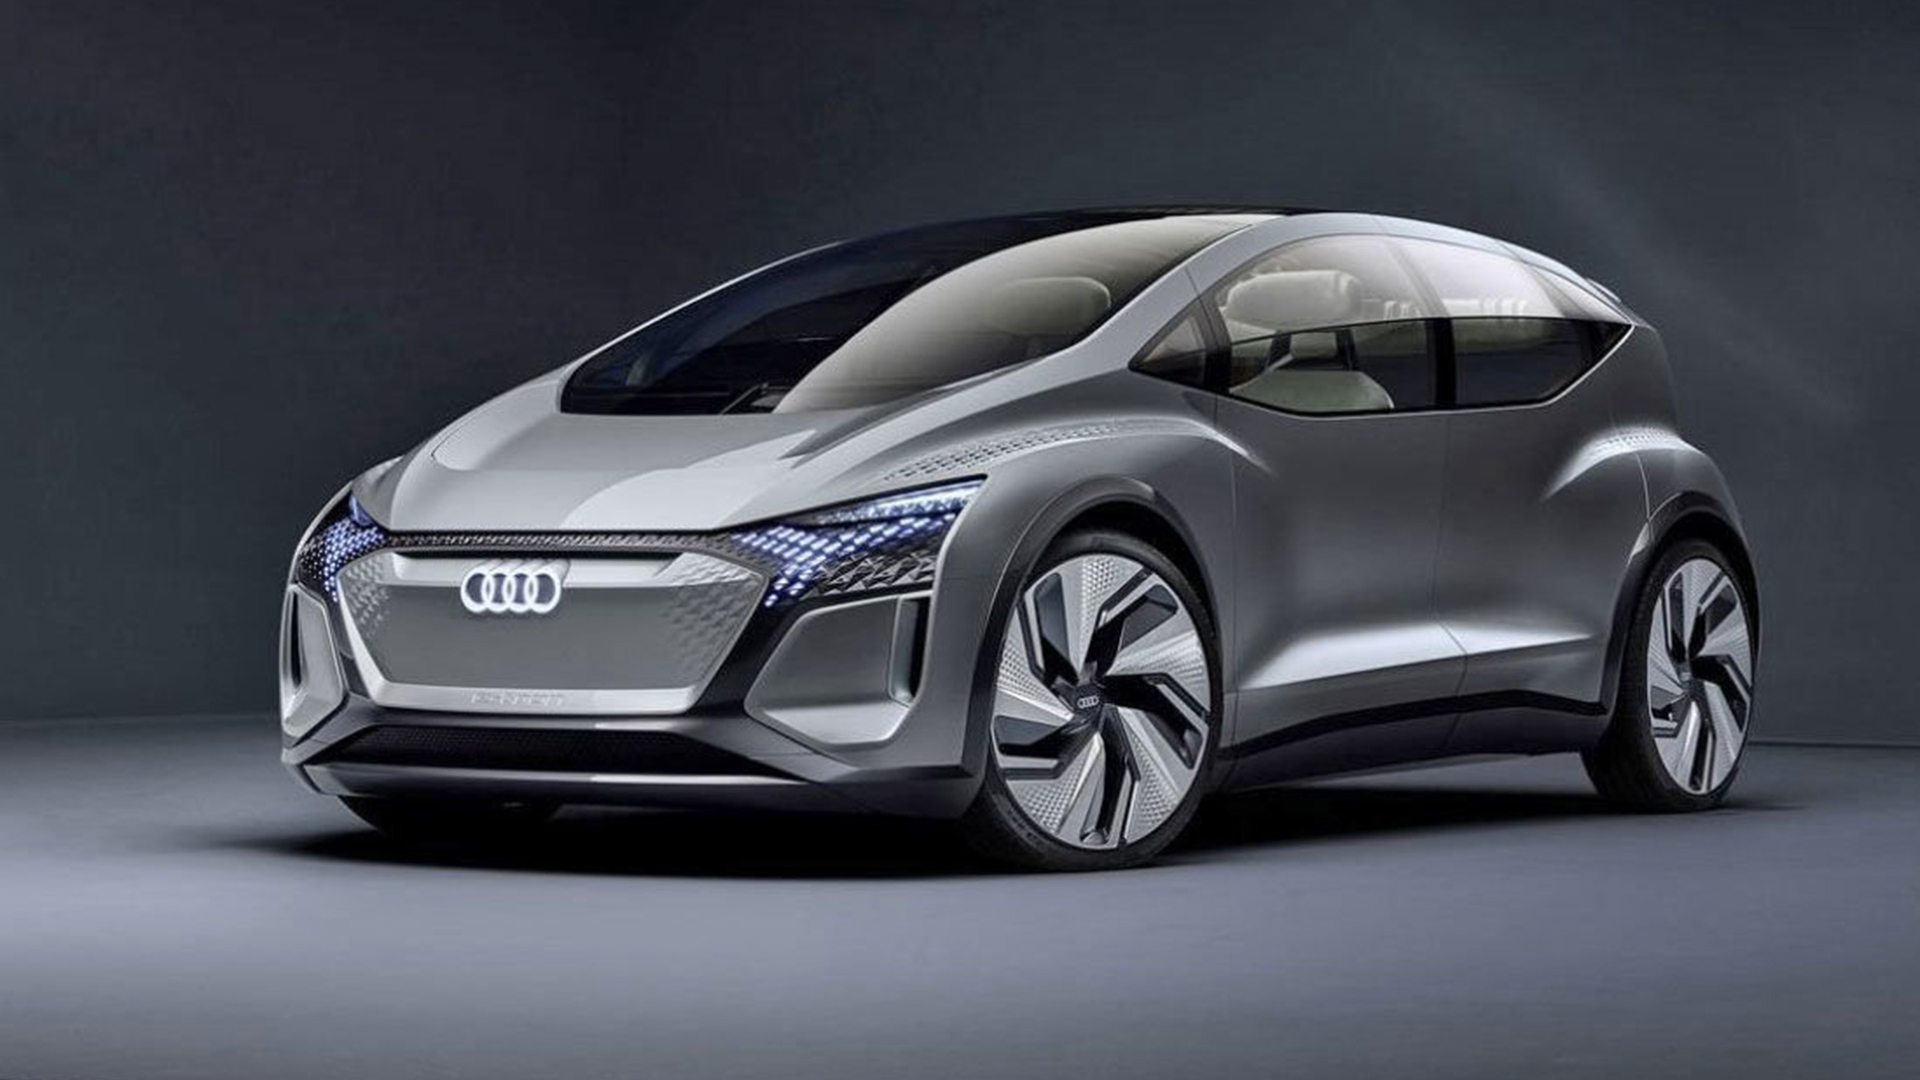 mashable.com - Mashable Video - Audi's latest self-driving concept car is pure luxury and style